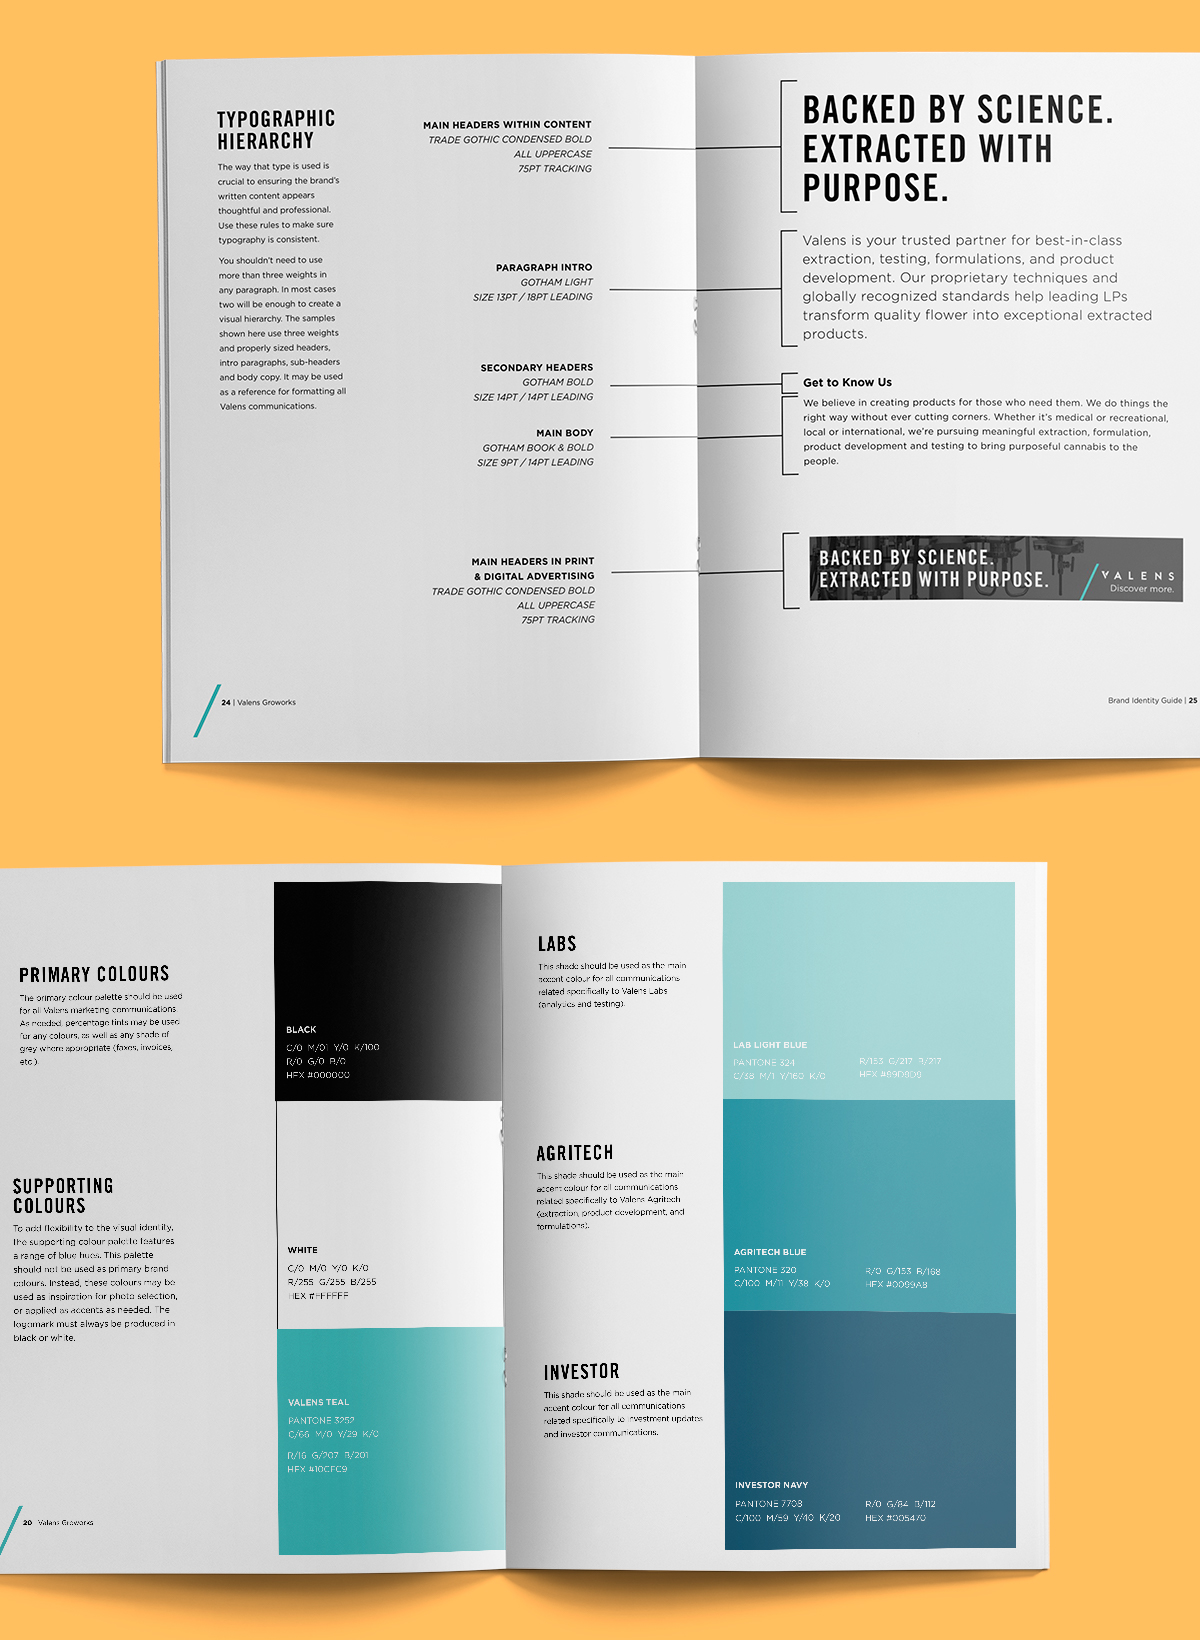 Valens Brand Identity Guide with typography and colour palette on light orange